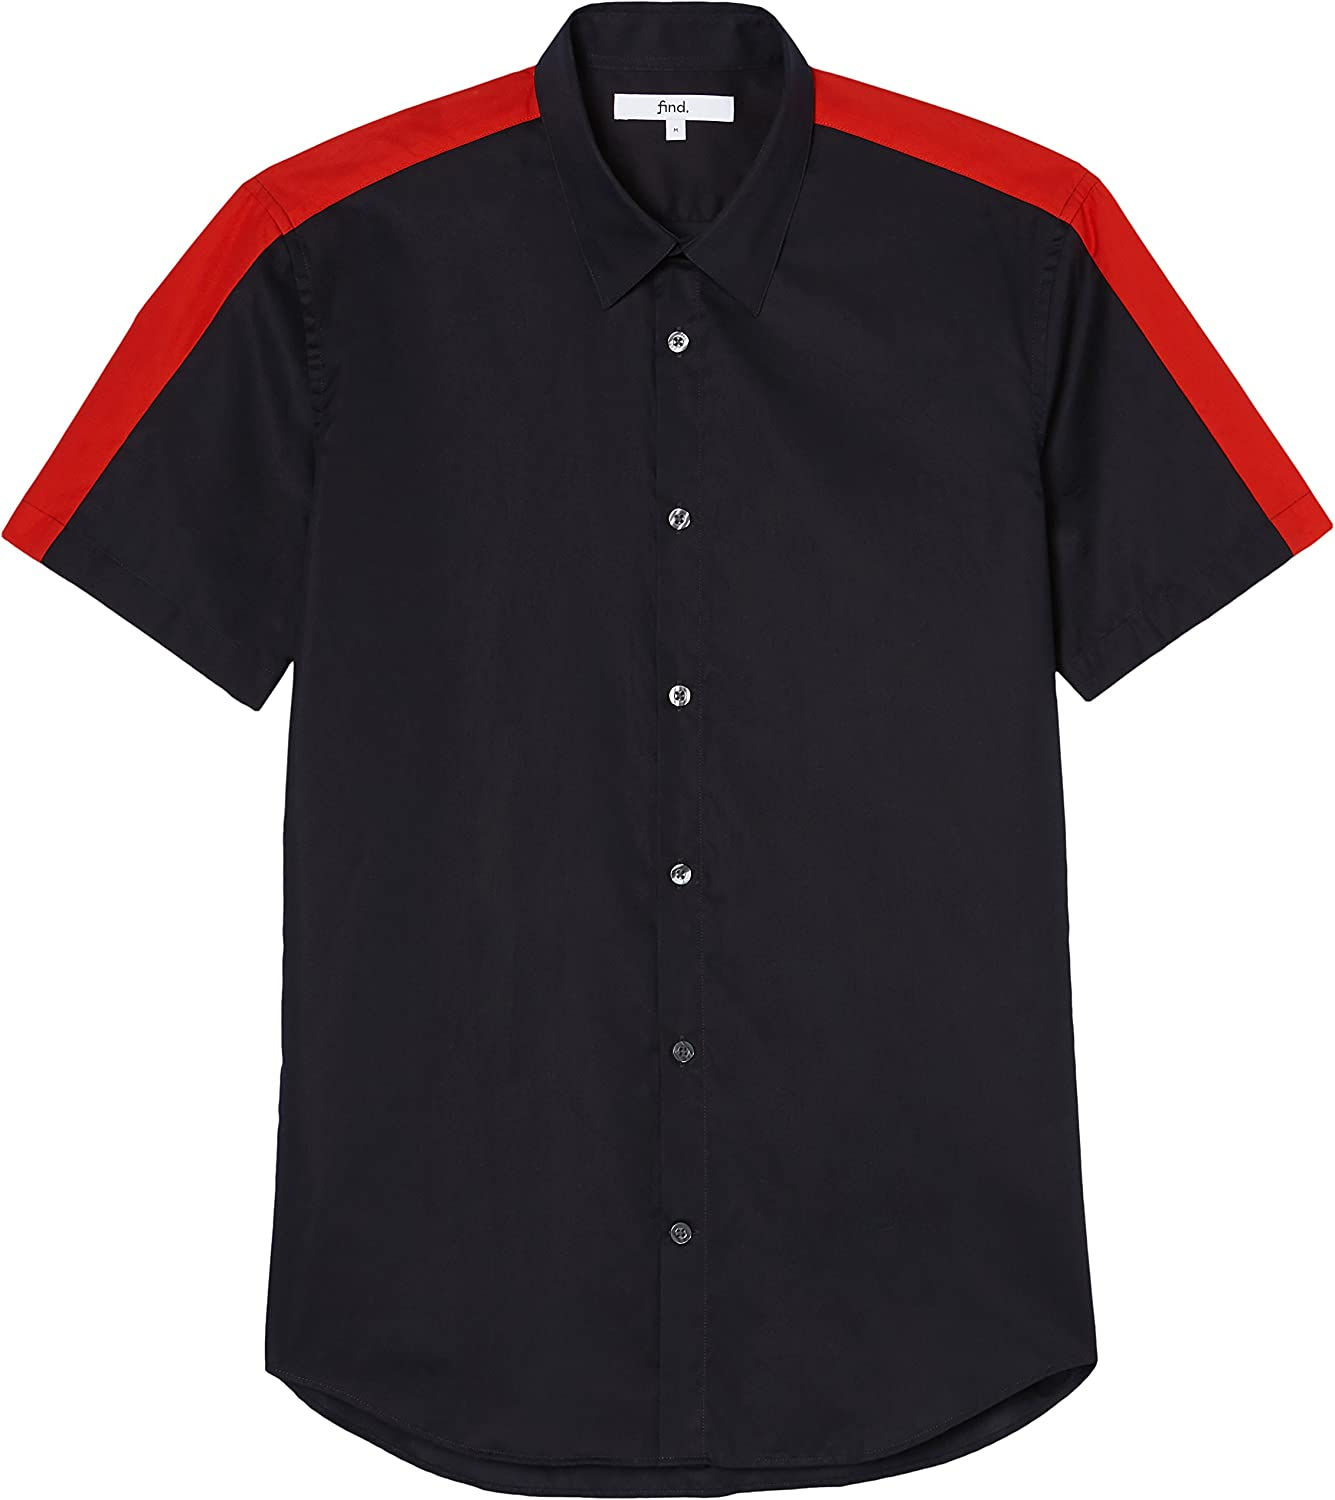 Amazon Brand - find. Men's Short Sleeve Slim Fit Shirt Black